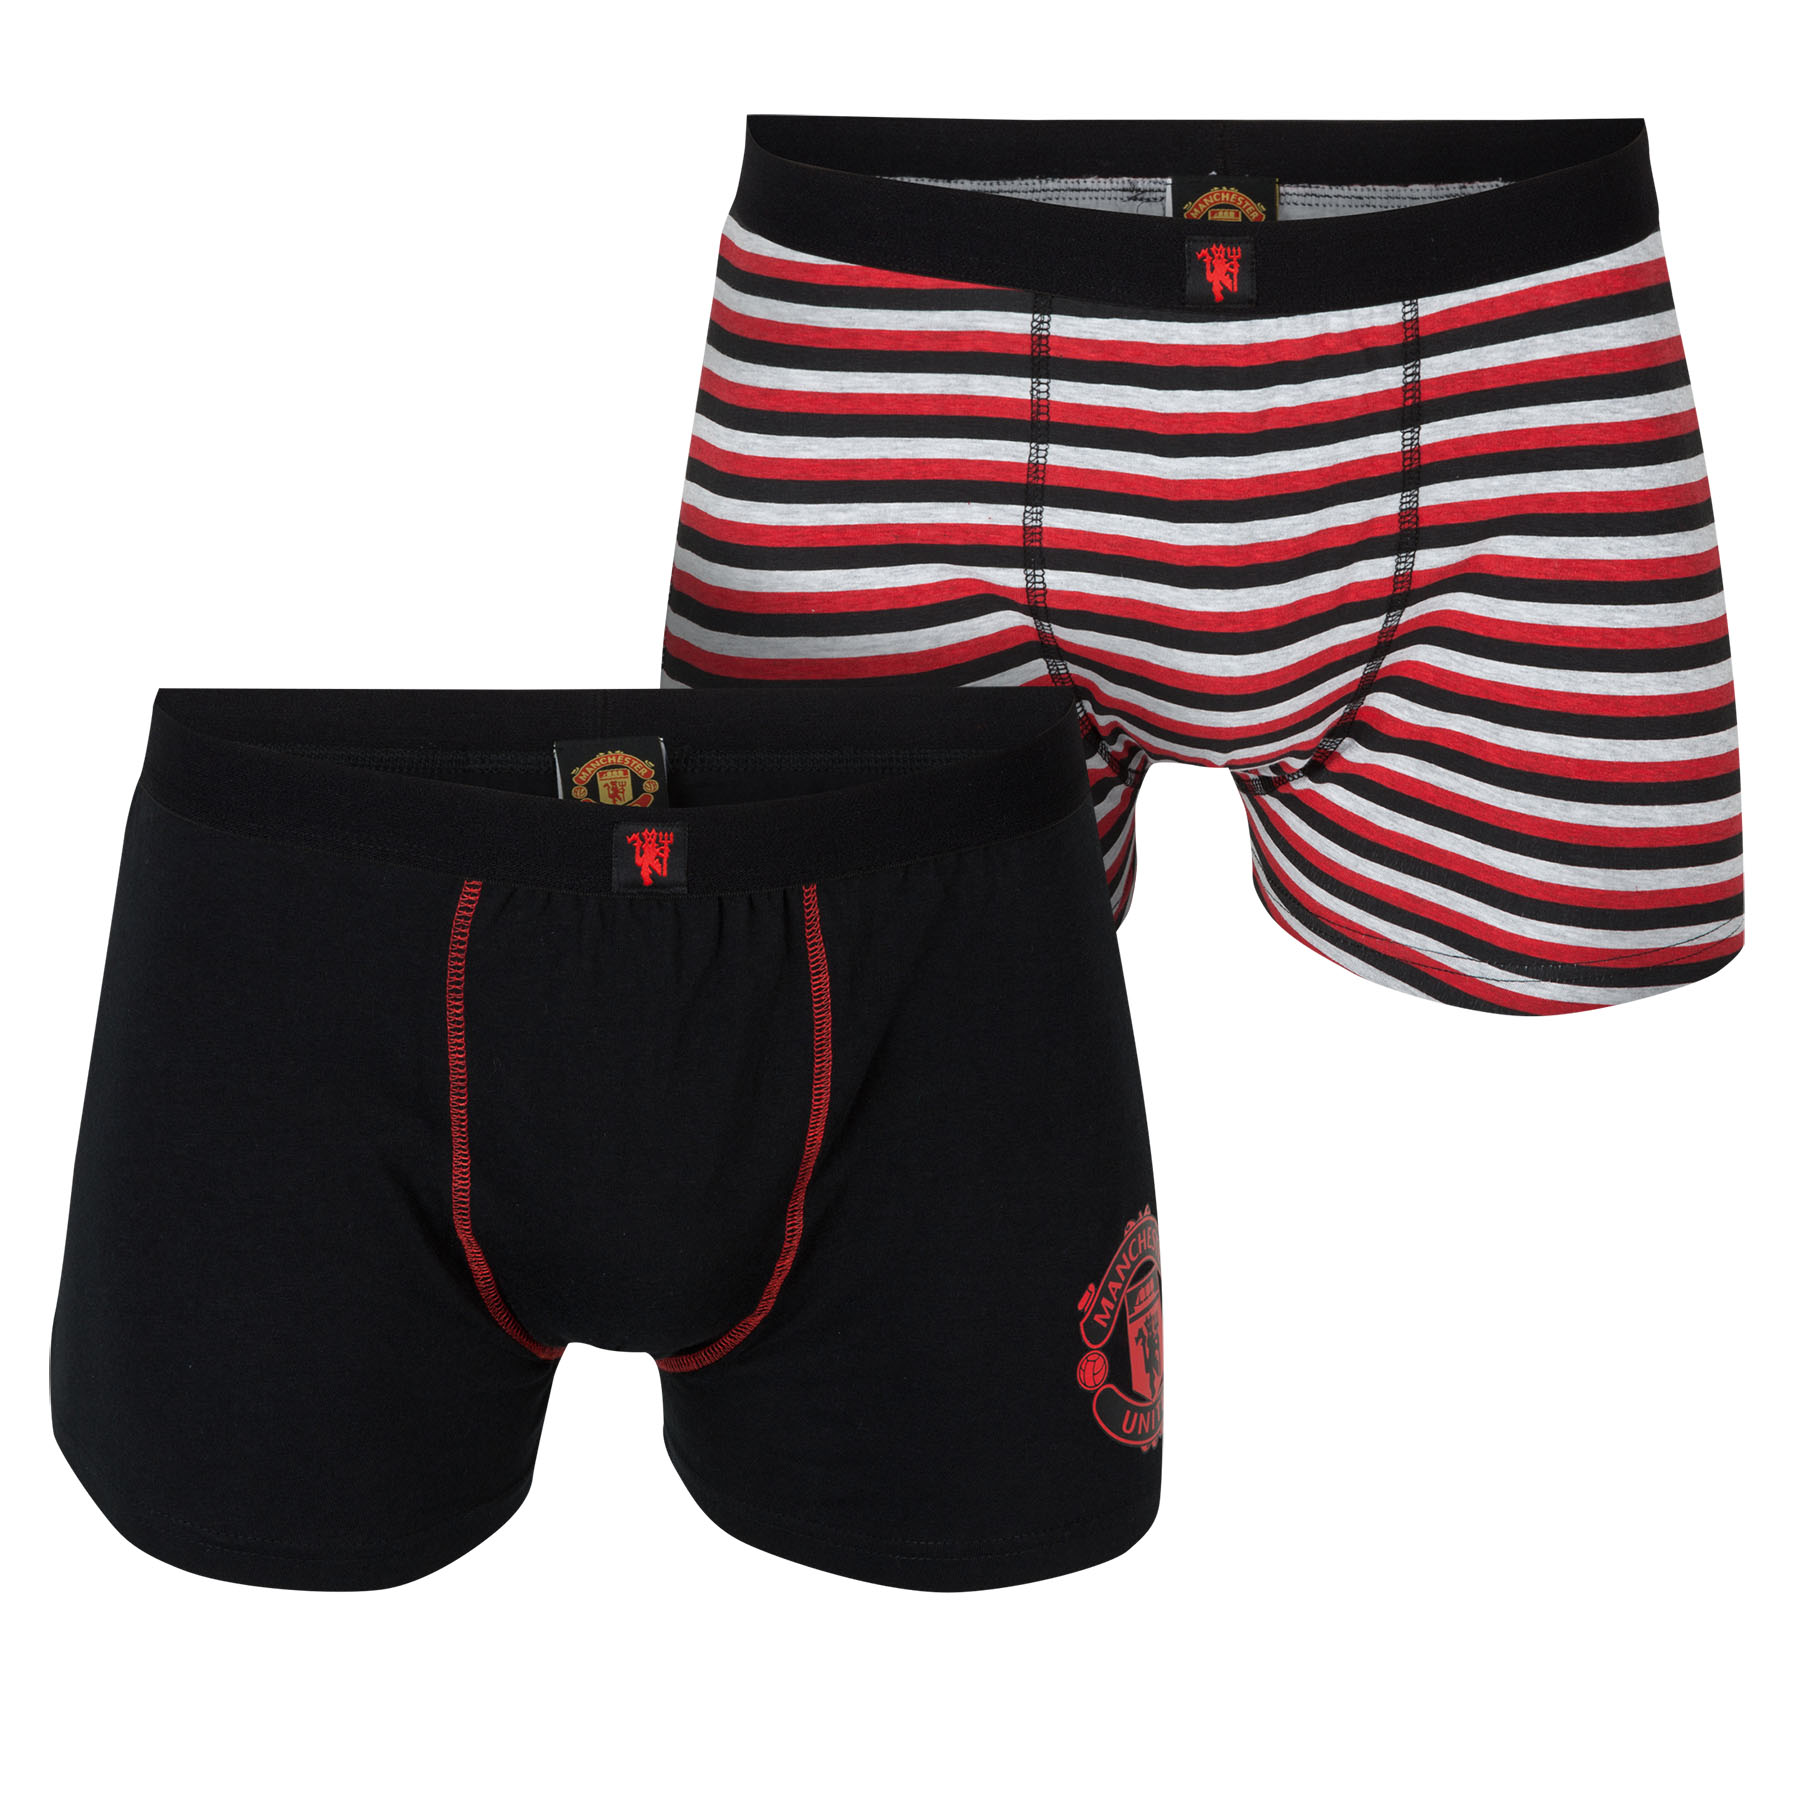 Manchester United 2 PK Boxer Shorts - Black/Red - Mens